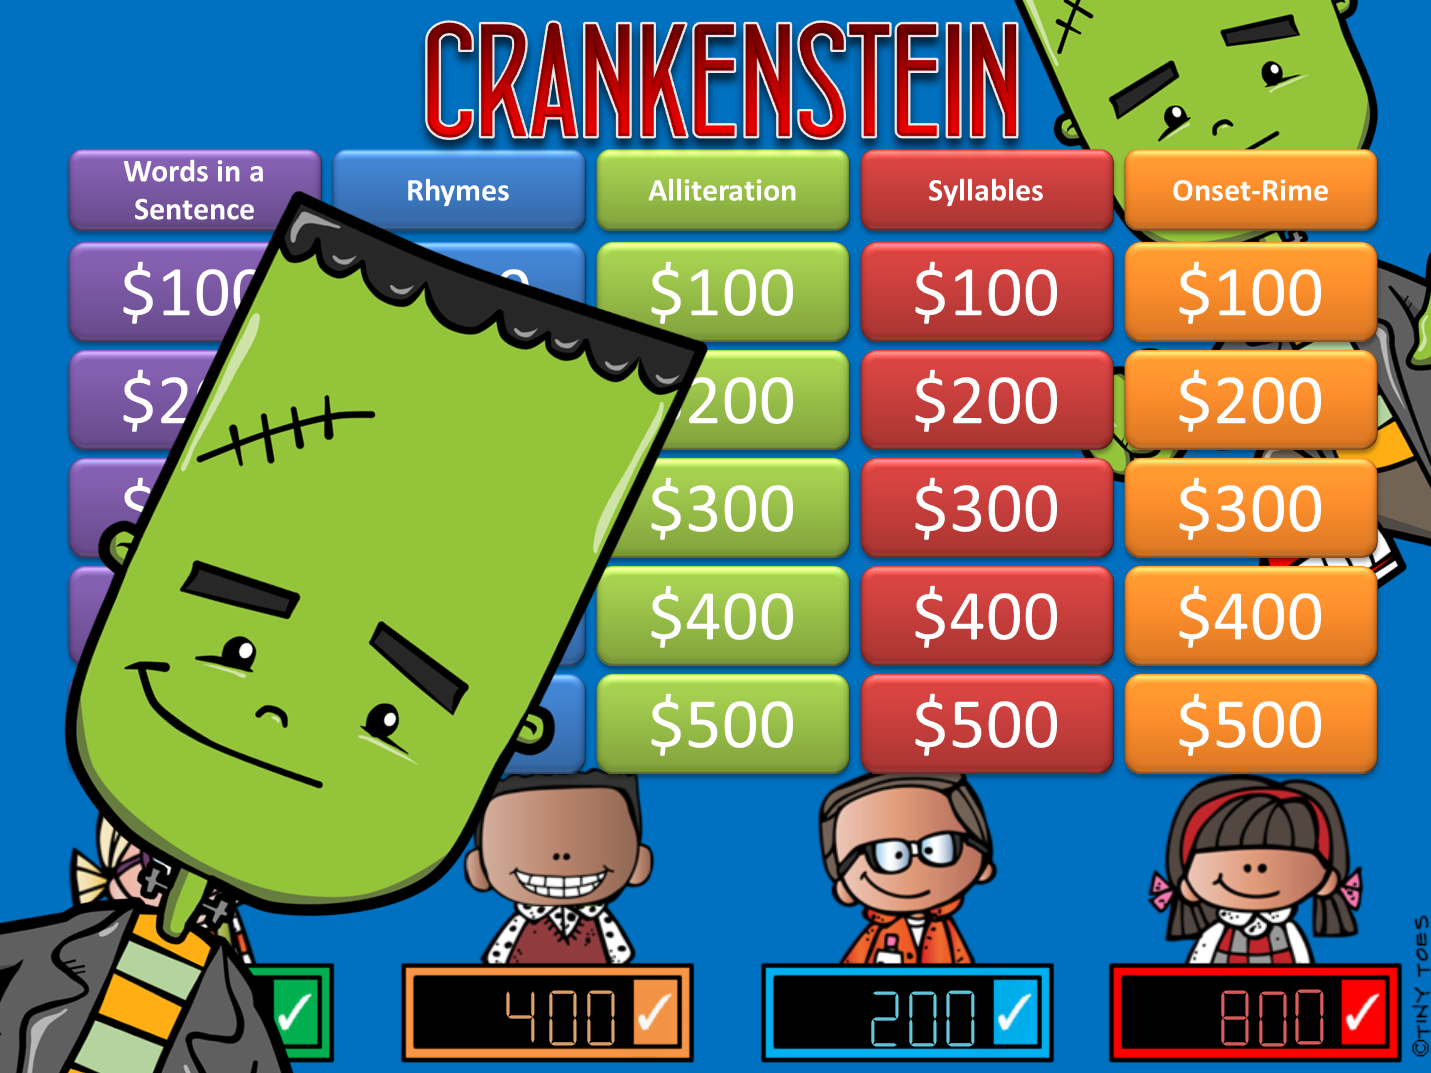 Crankenstein Phonemic Awareness Jeopardy Style Game Show